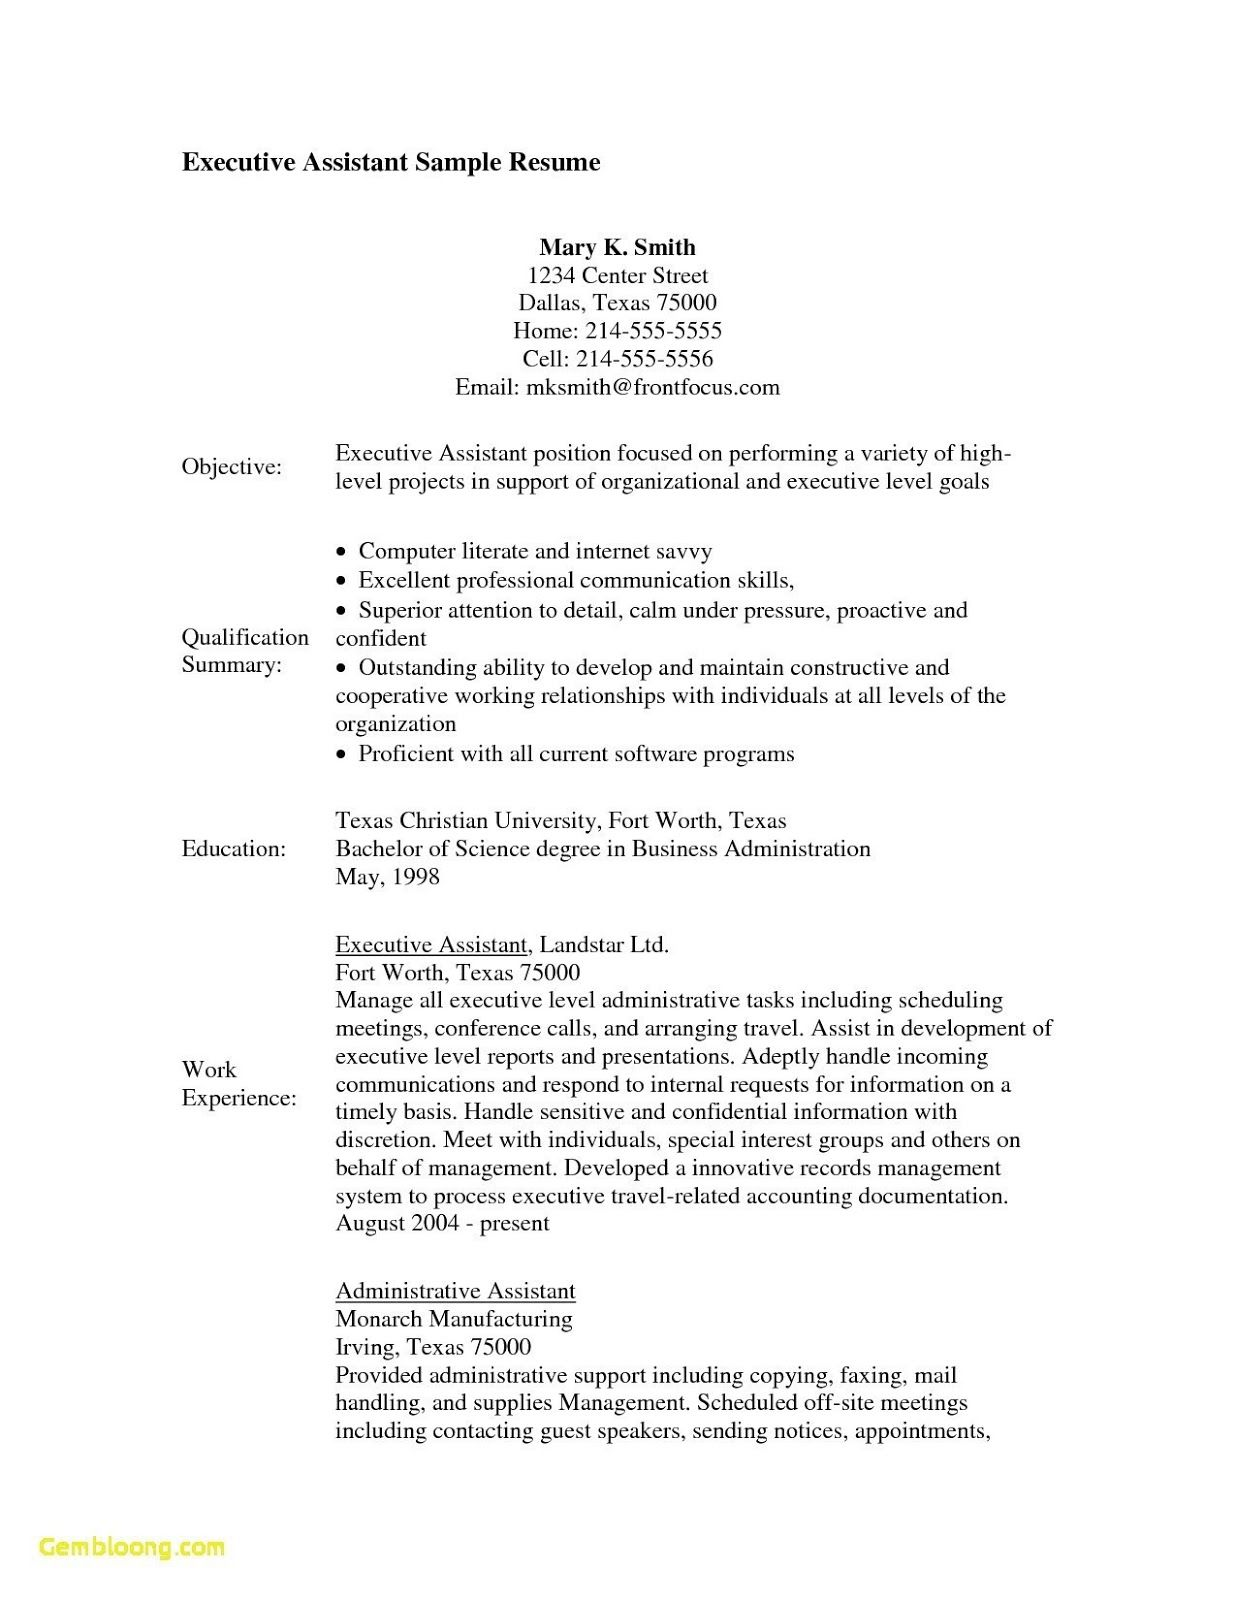 Medical Assistant Resume Examples 2019 Entry Level 2020